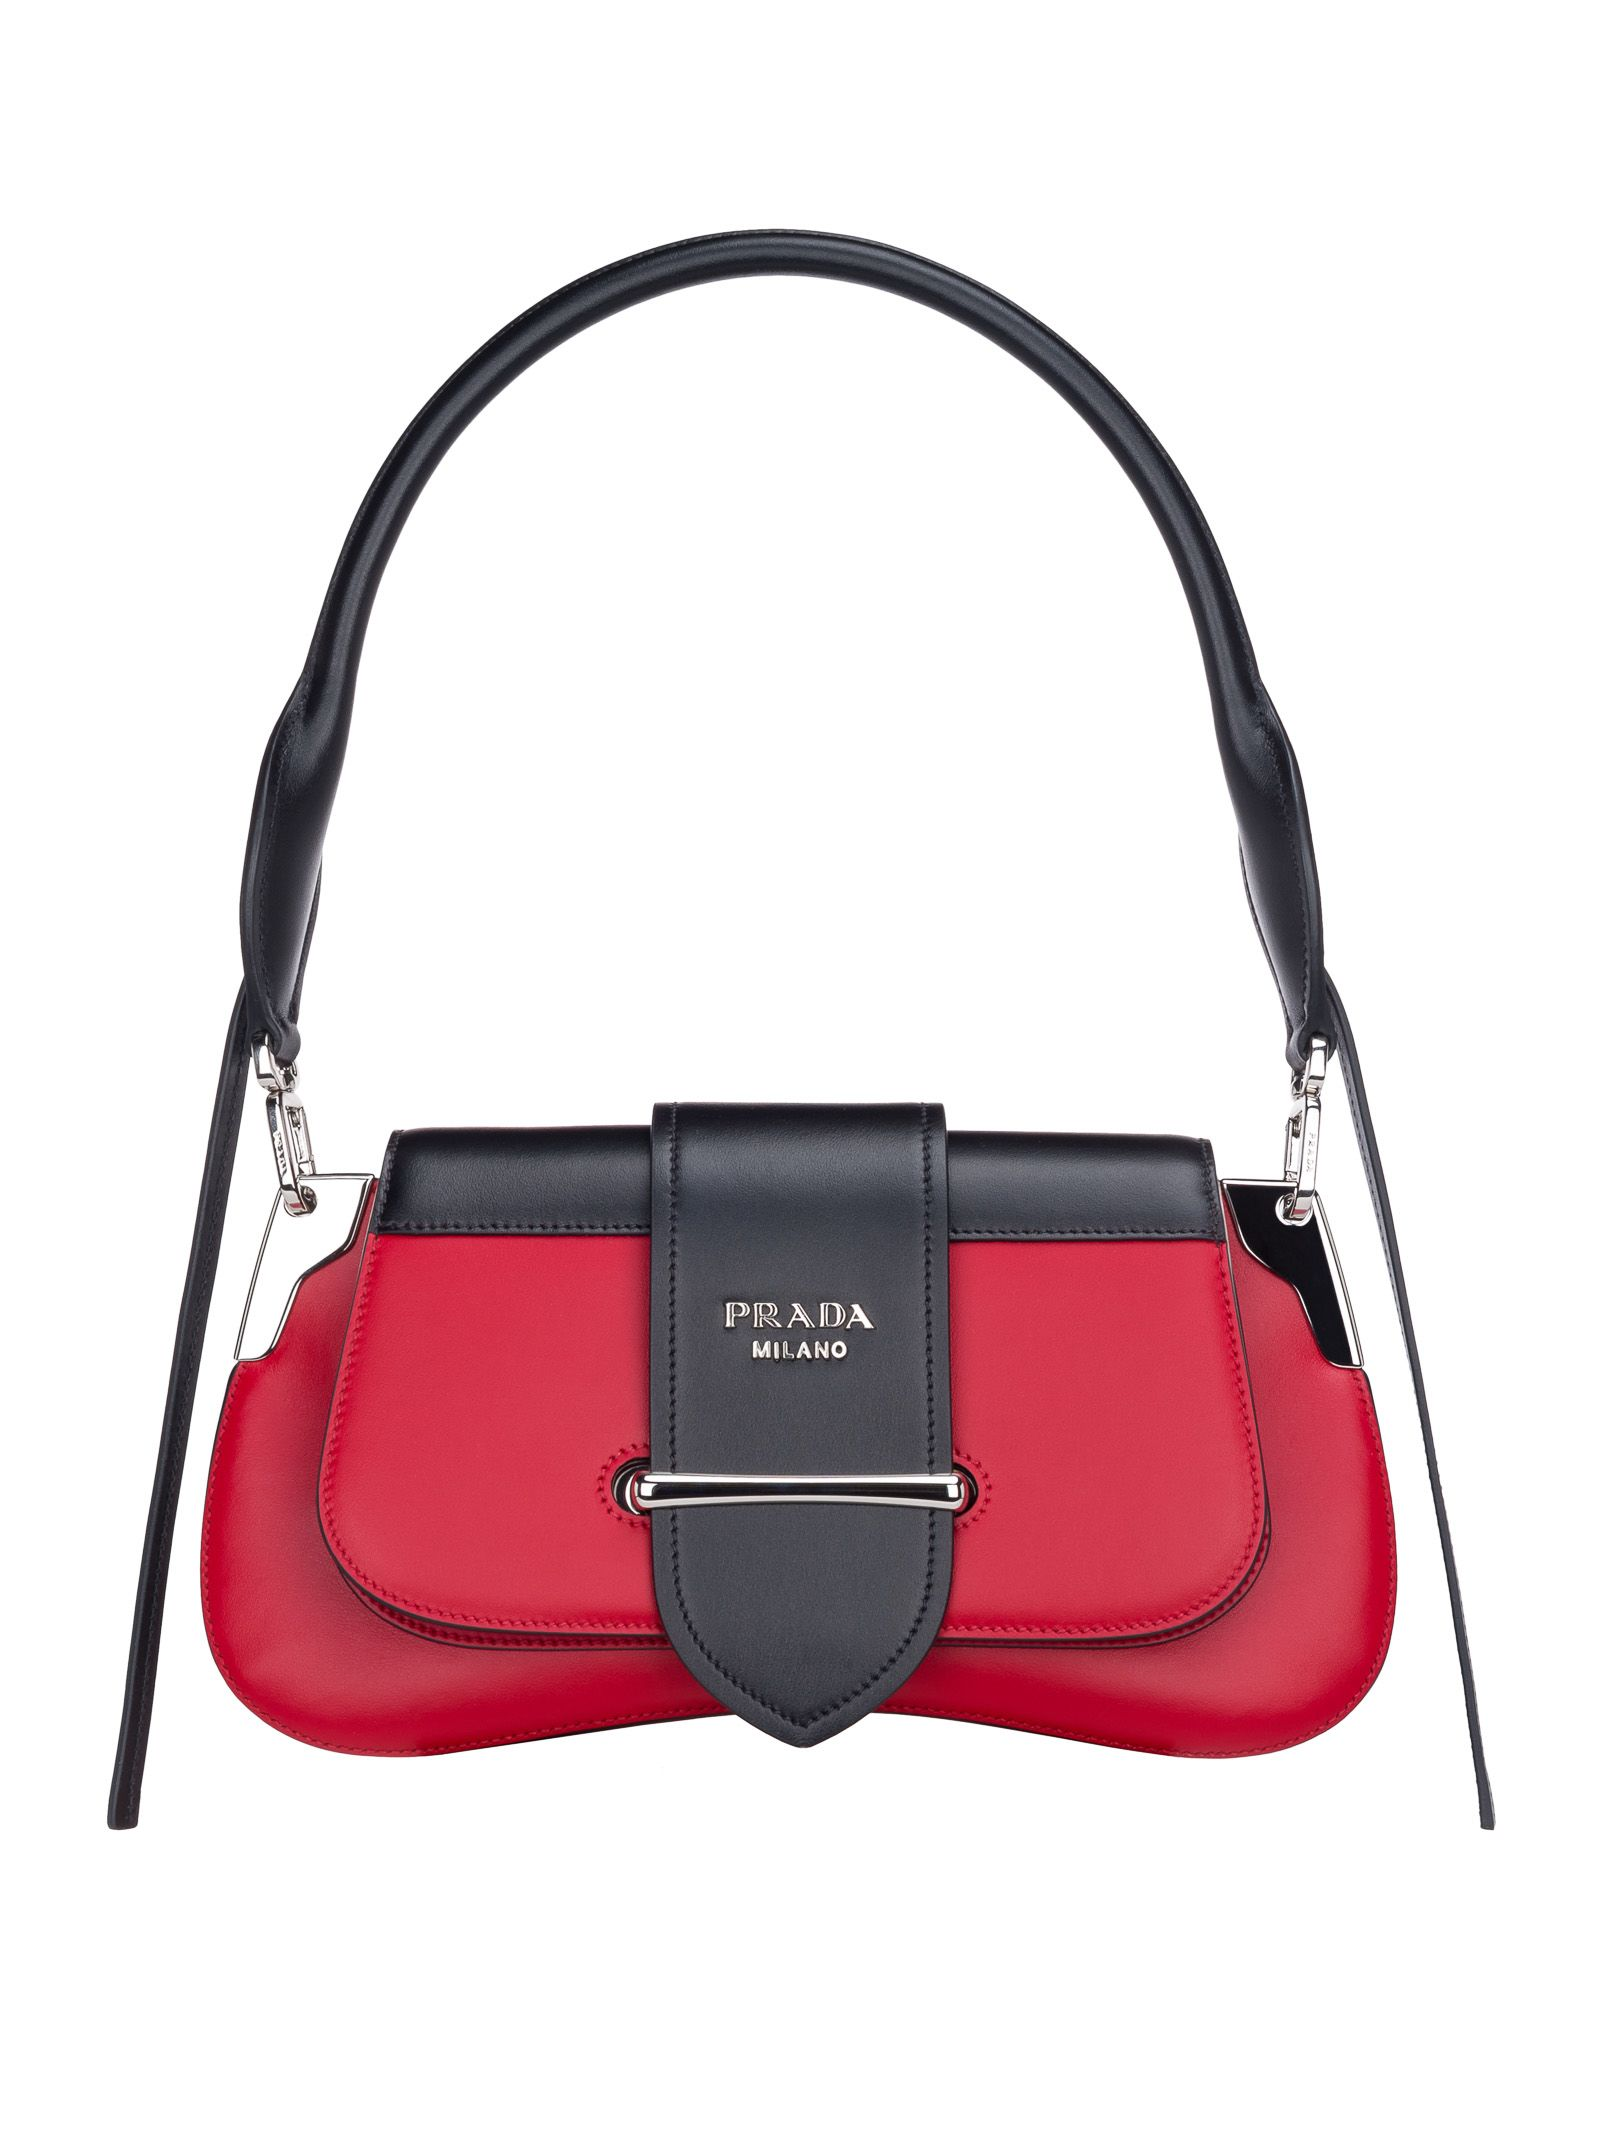 d464c1e81101 Prada Prada Prada Sidonie Shoulder Bag - RED+BLACK - 10772835 | italist